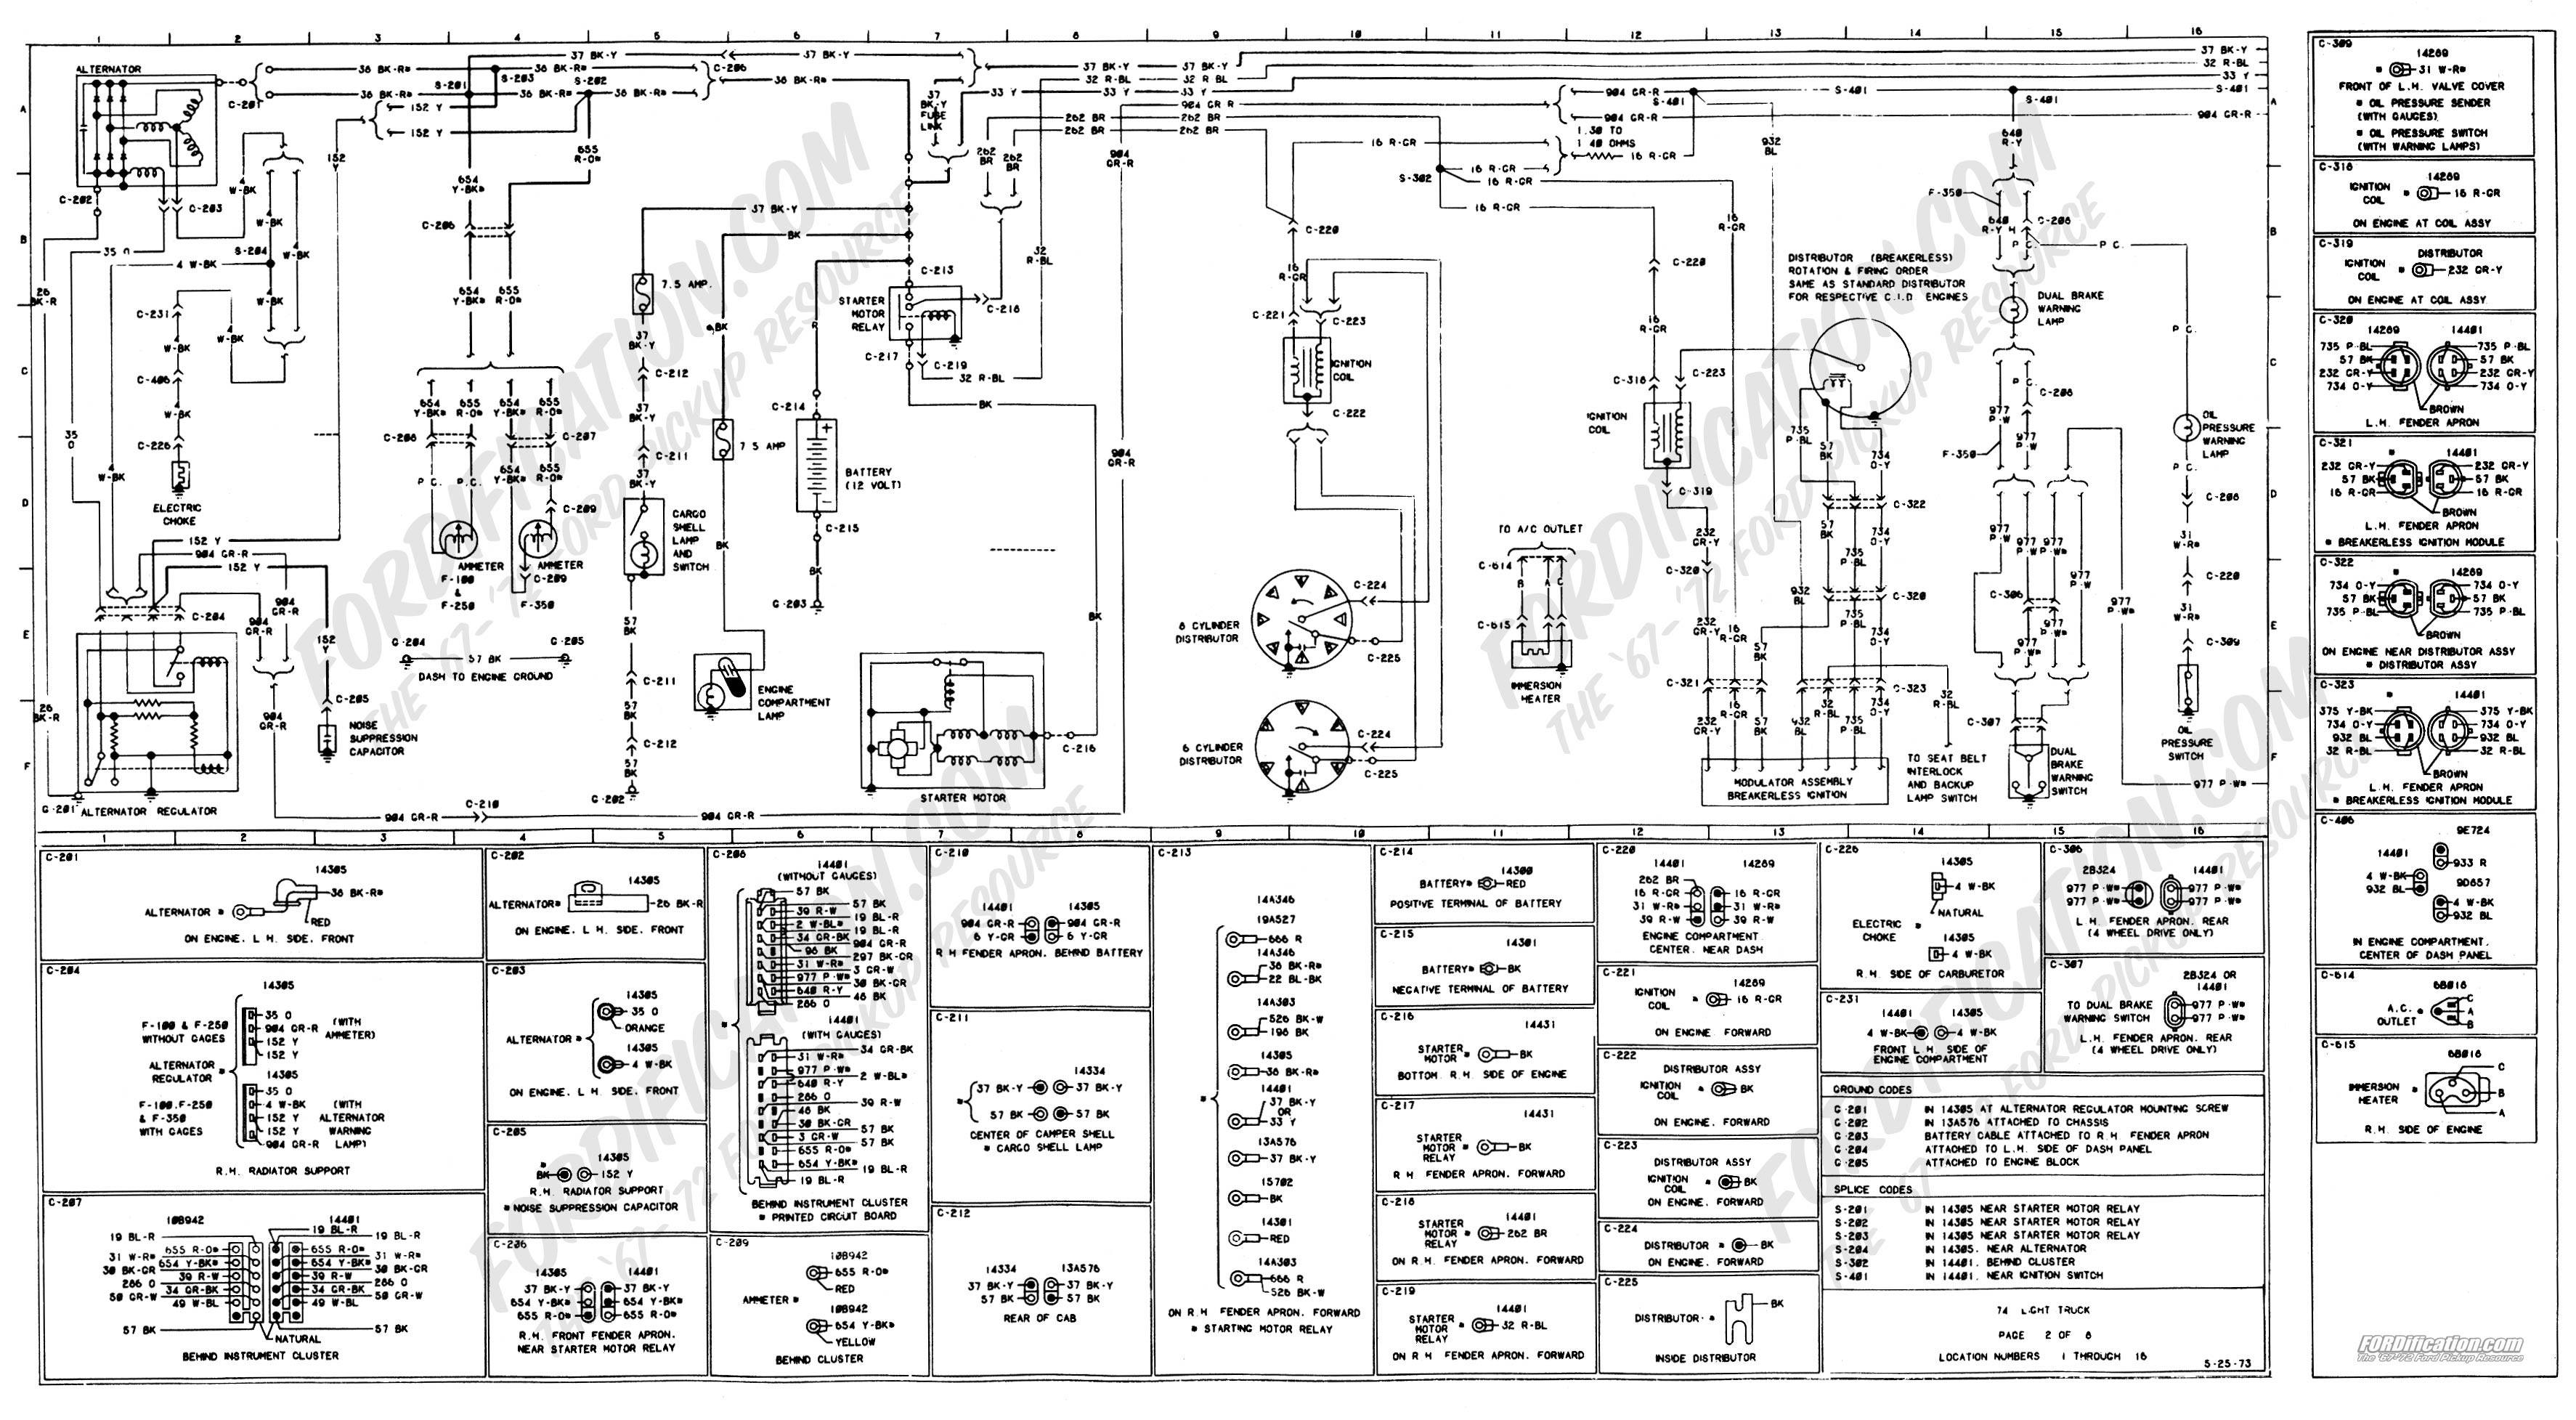 2011 F250 Trailer Wiring Diagram Fresh 1973 1979 Ford Truck Wiring - Rc Trailer Wiring Diagram